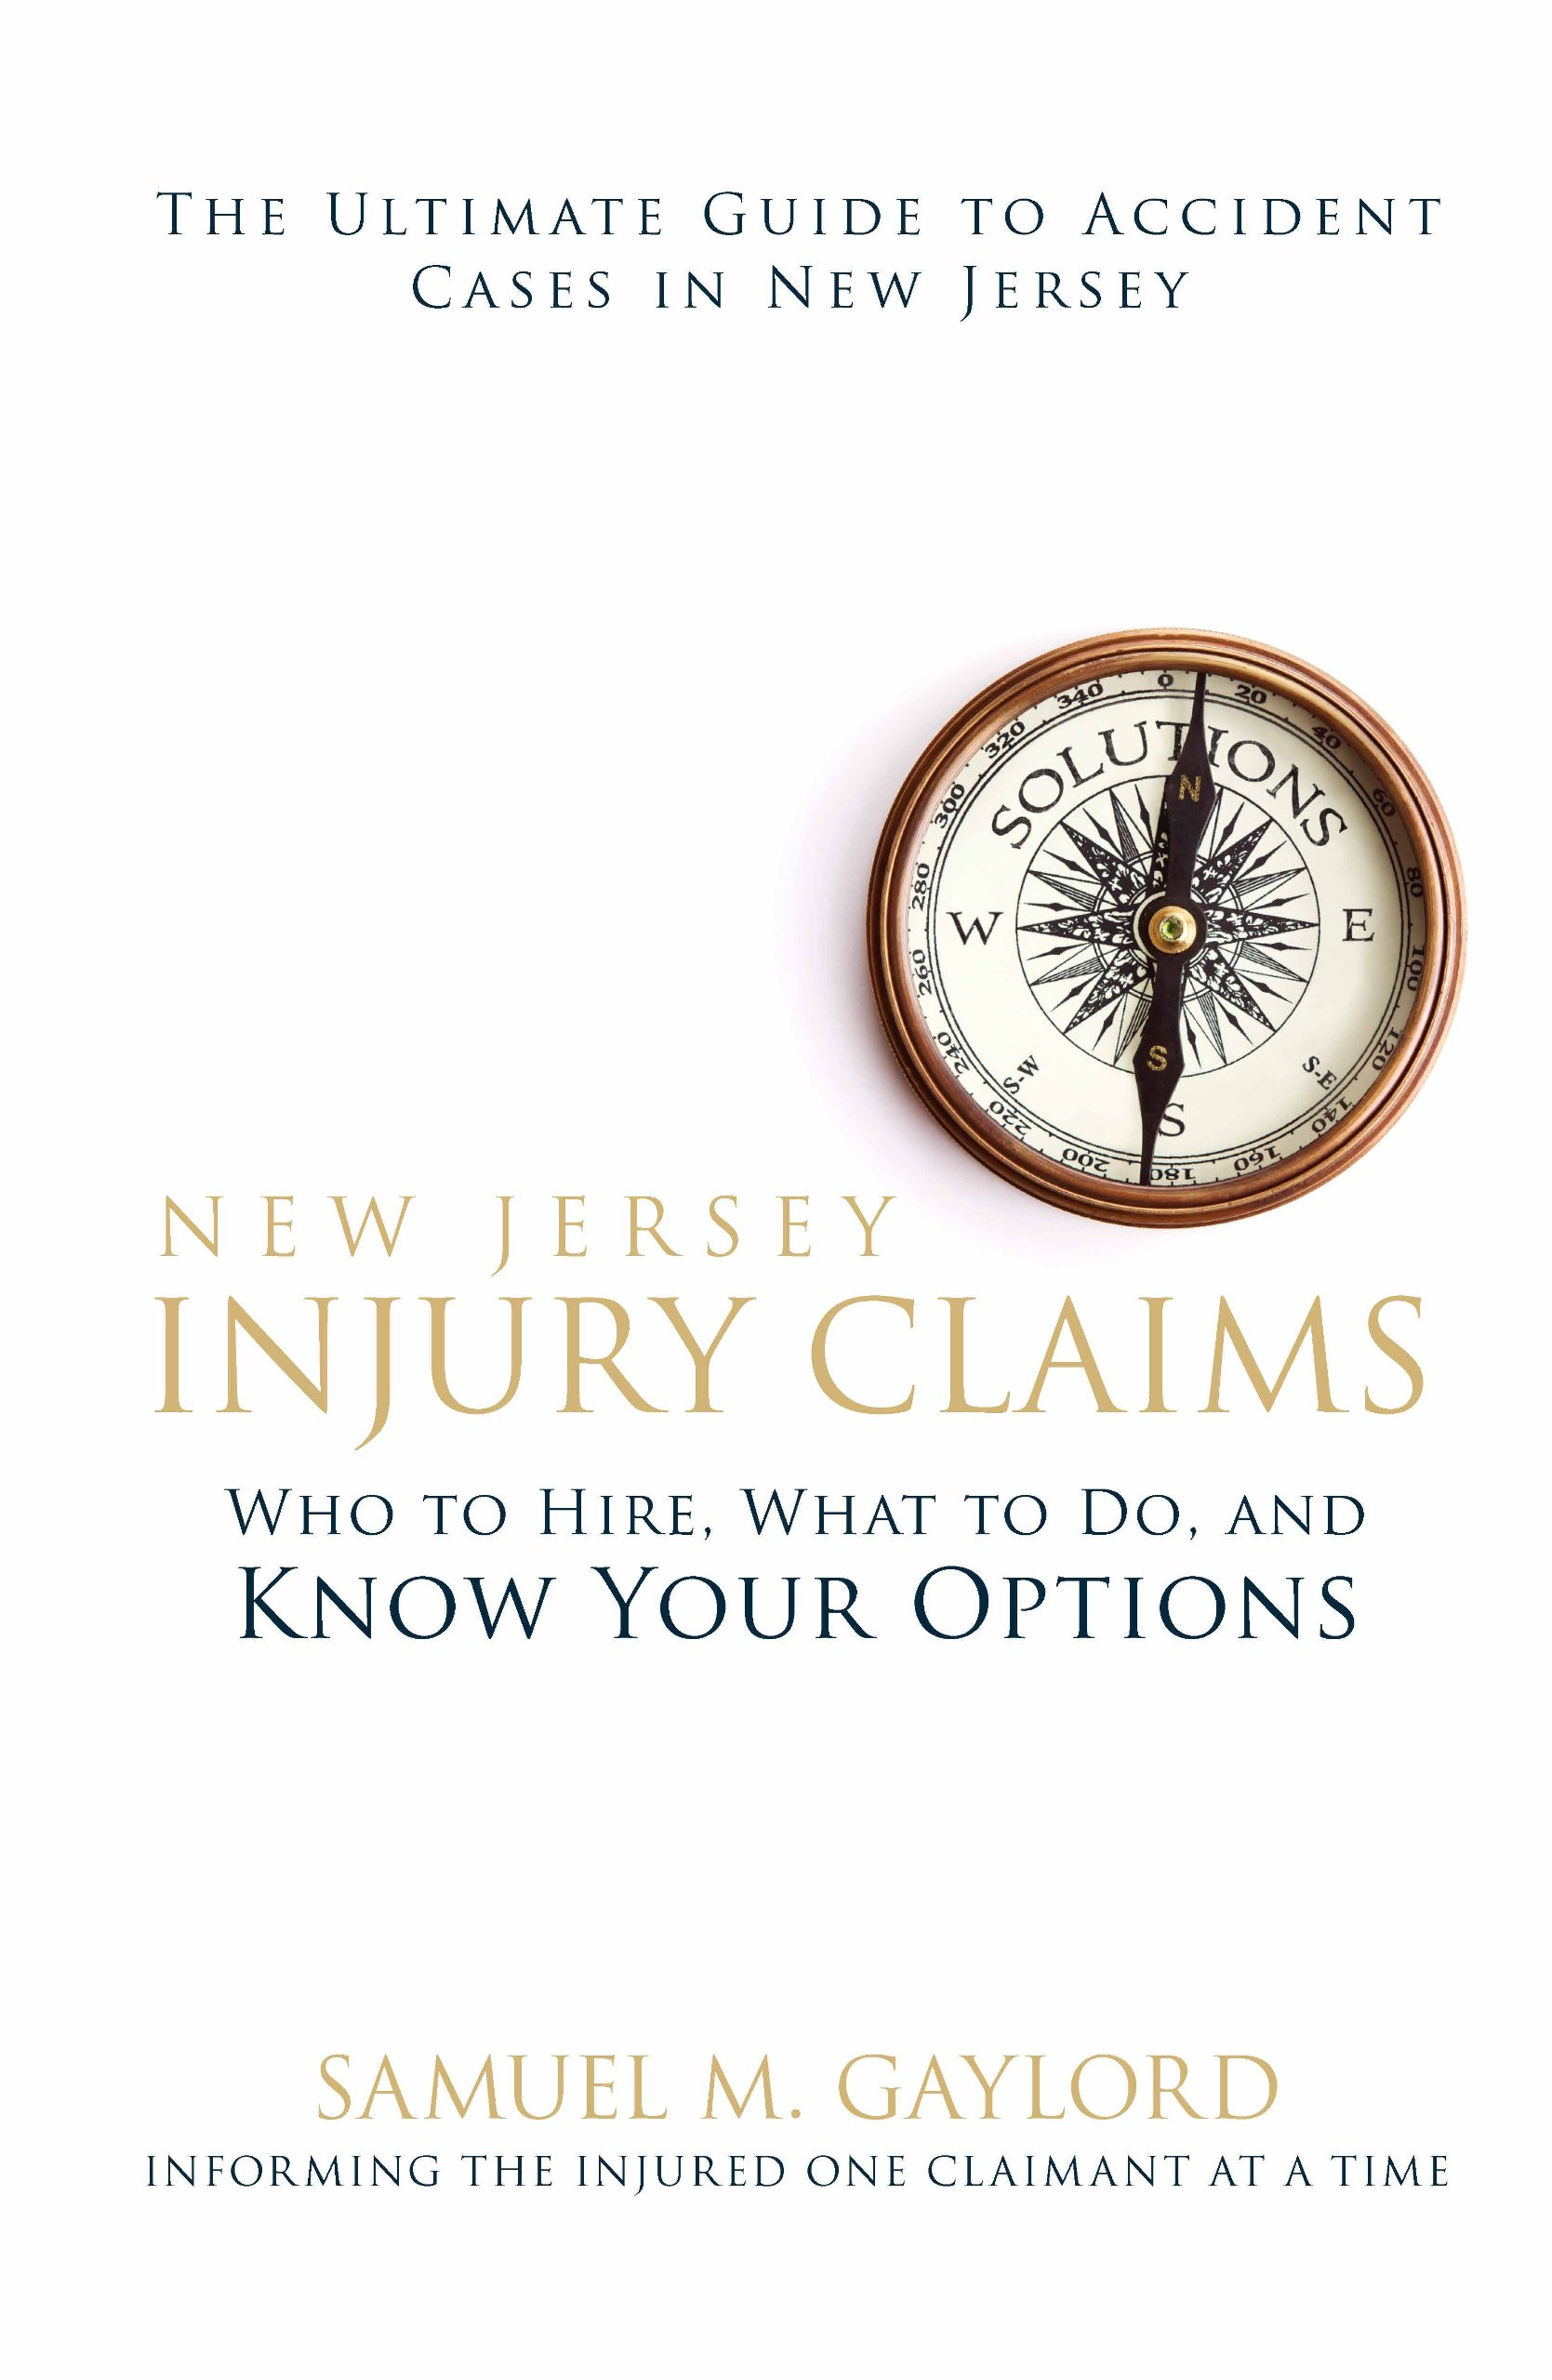 Get the best car Insurance in New Jersey